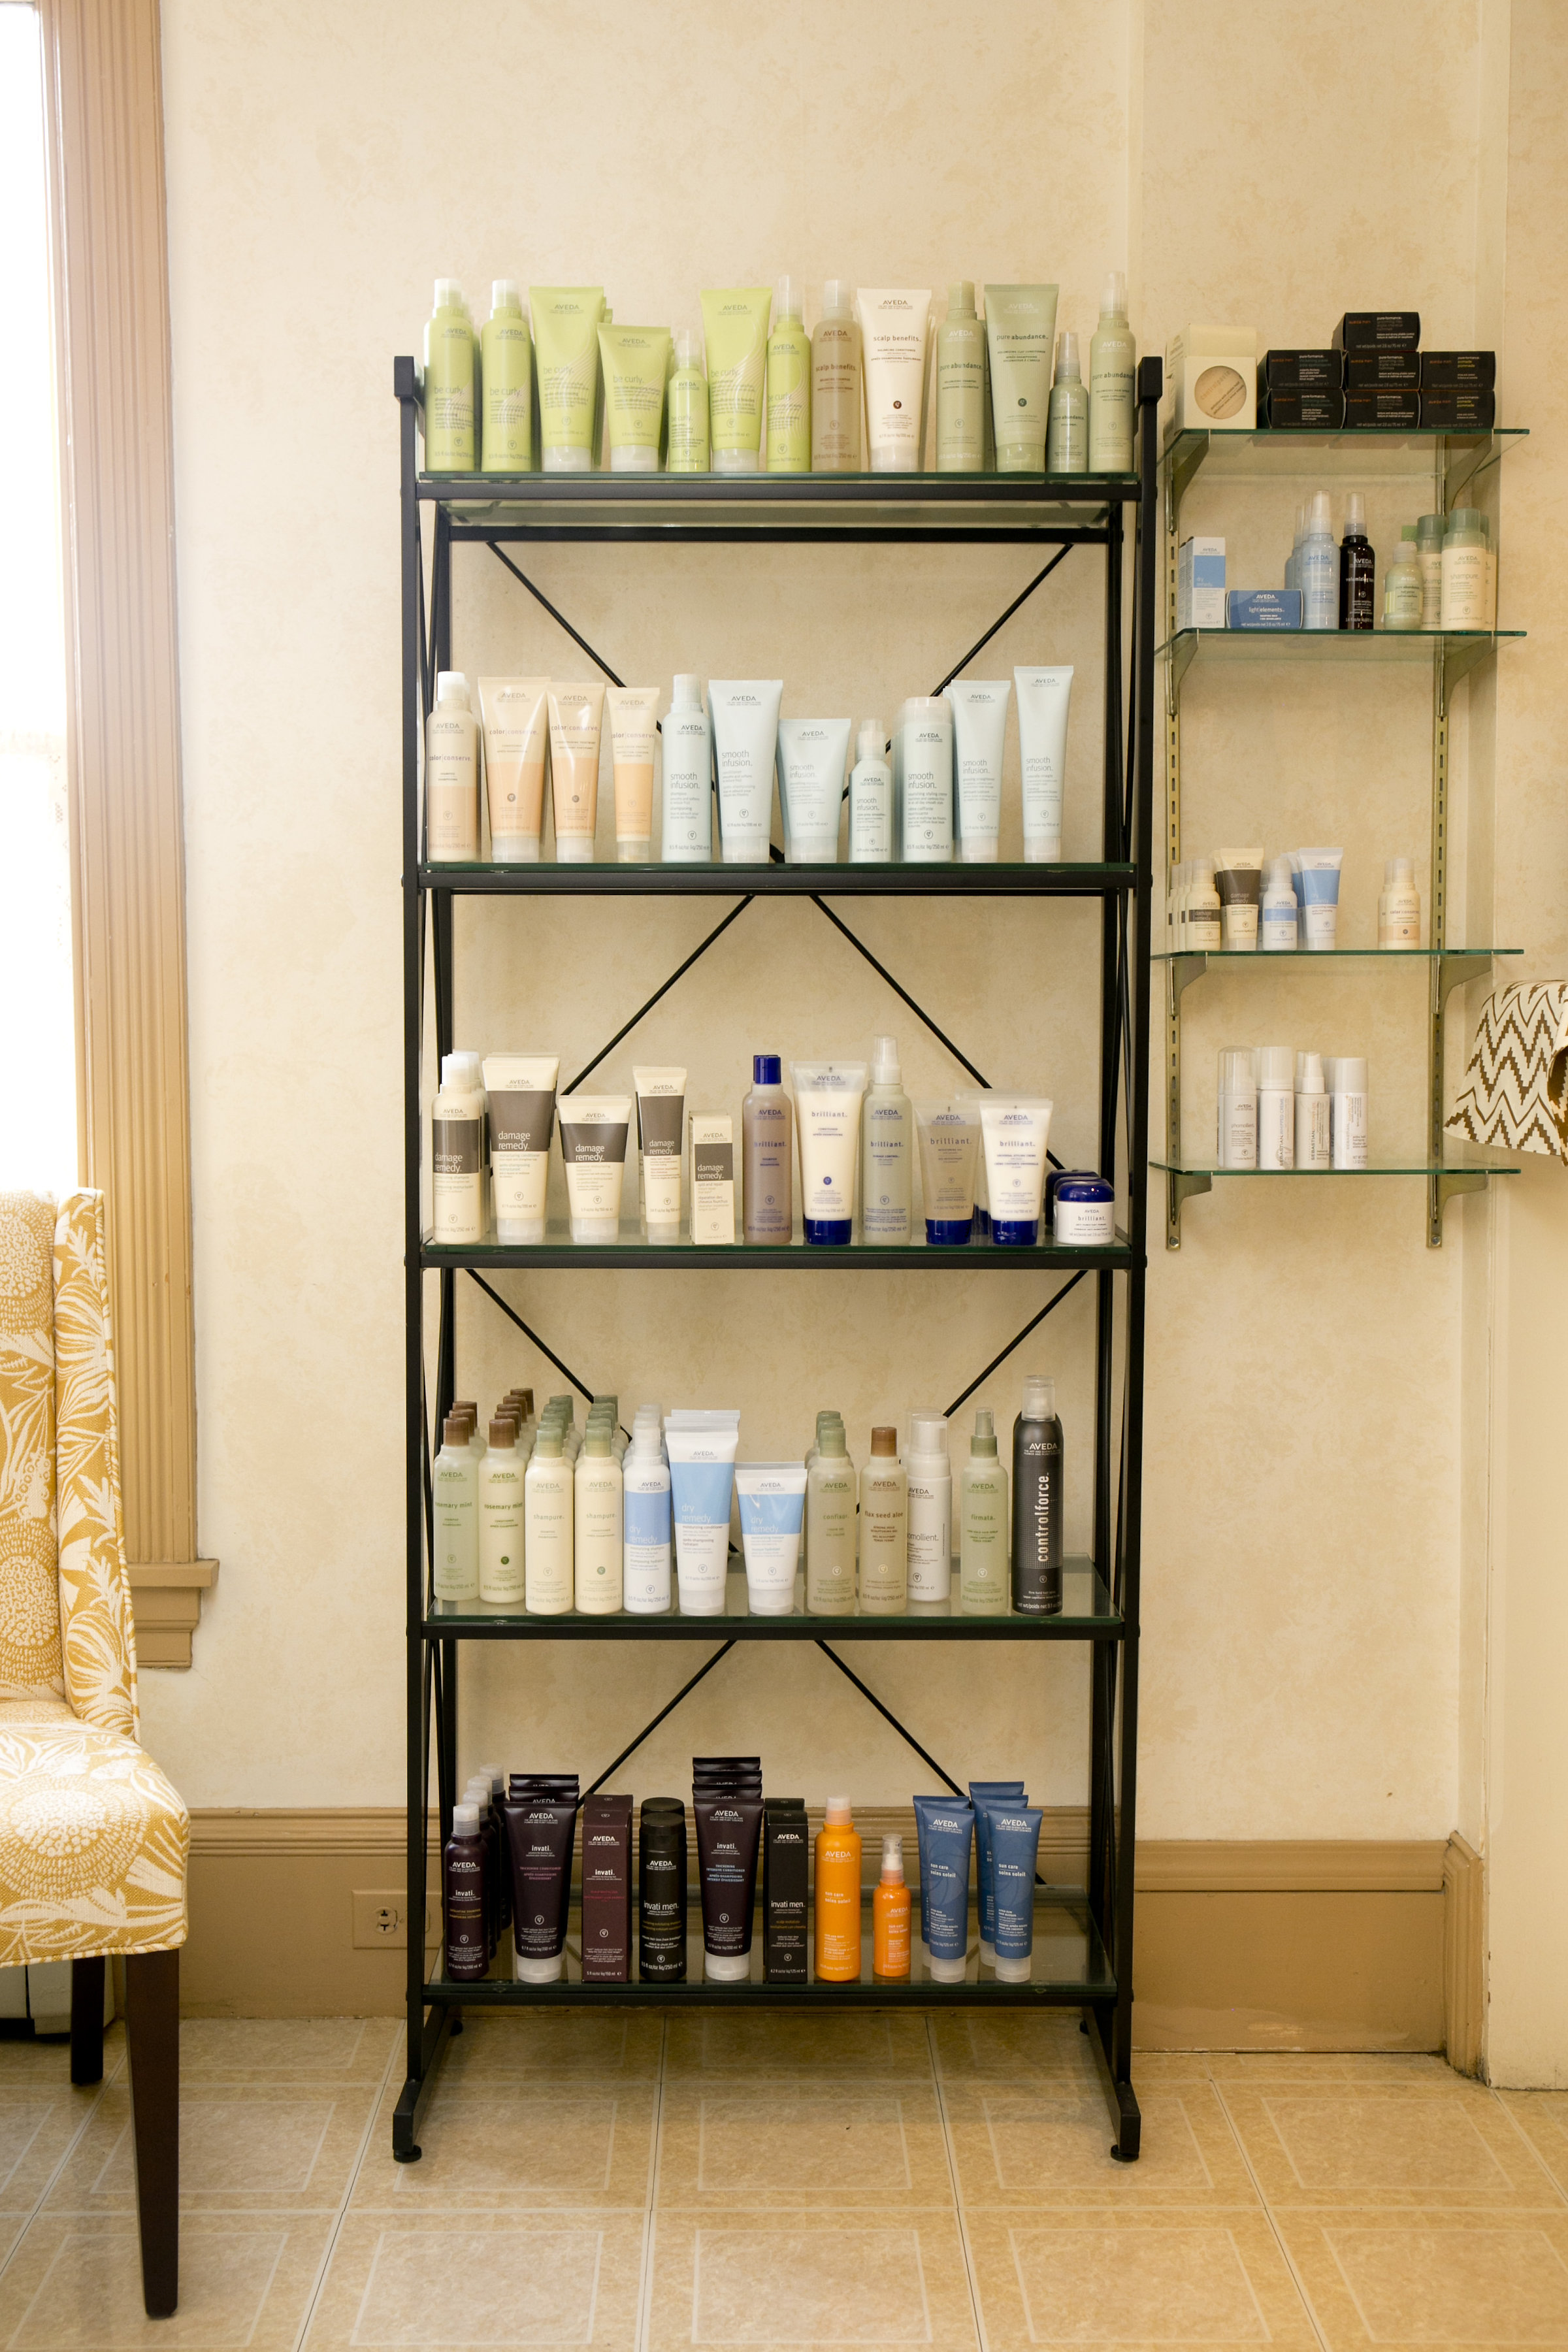 Professional salon products - View the product lines we recommend and trust.